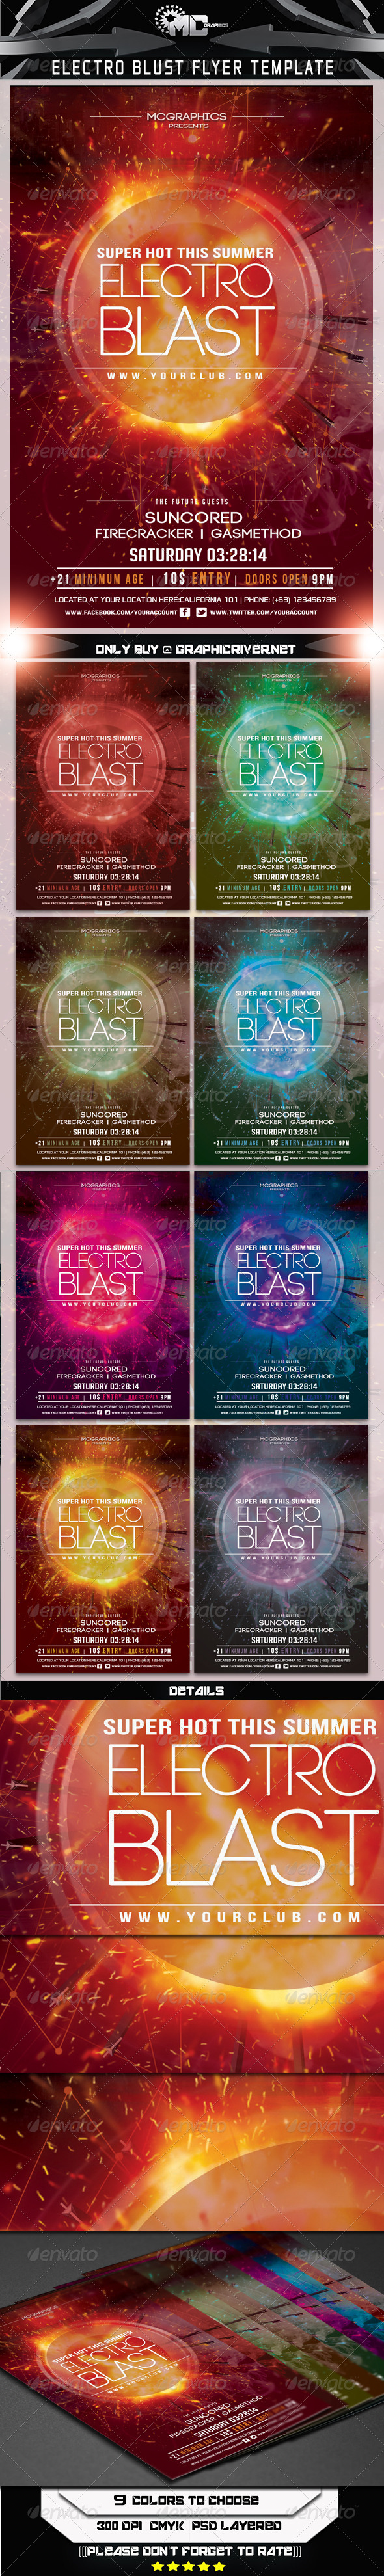 Electro Blast Flyer Template - Events Flyers